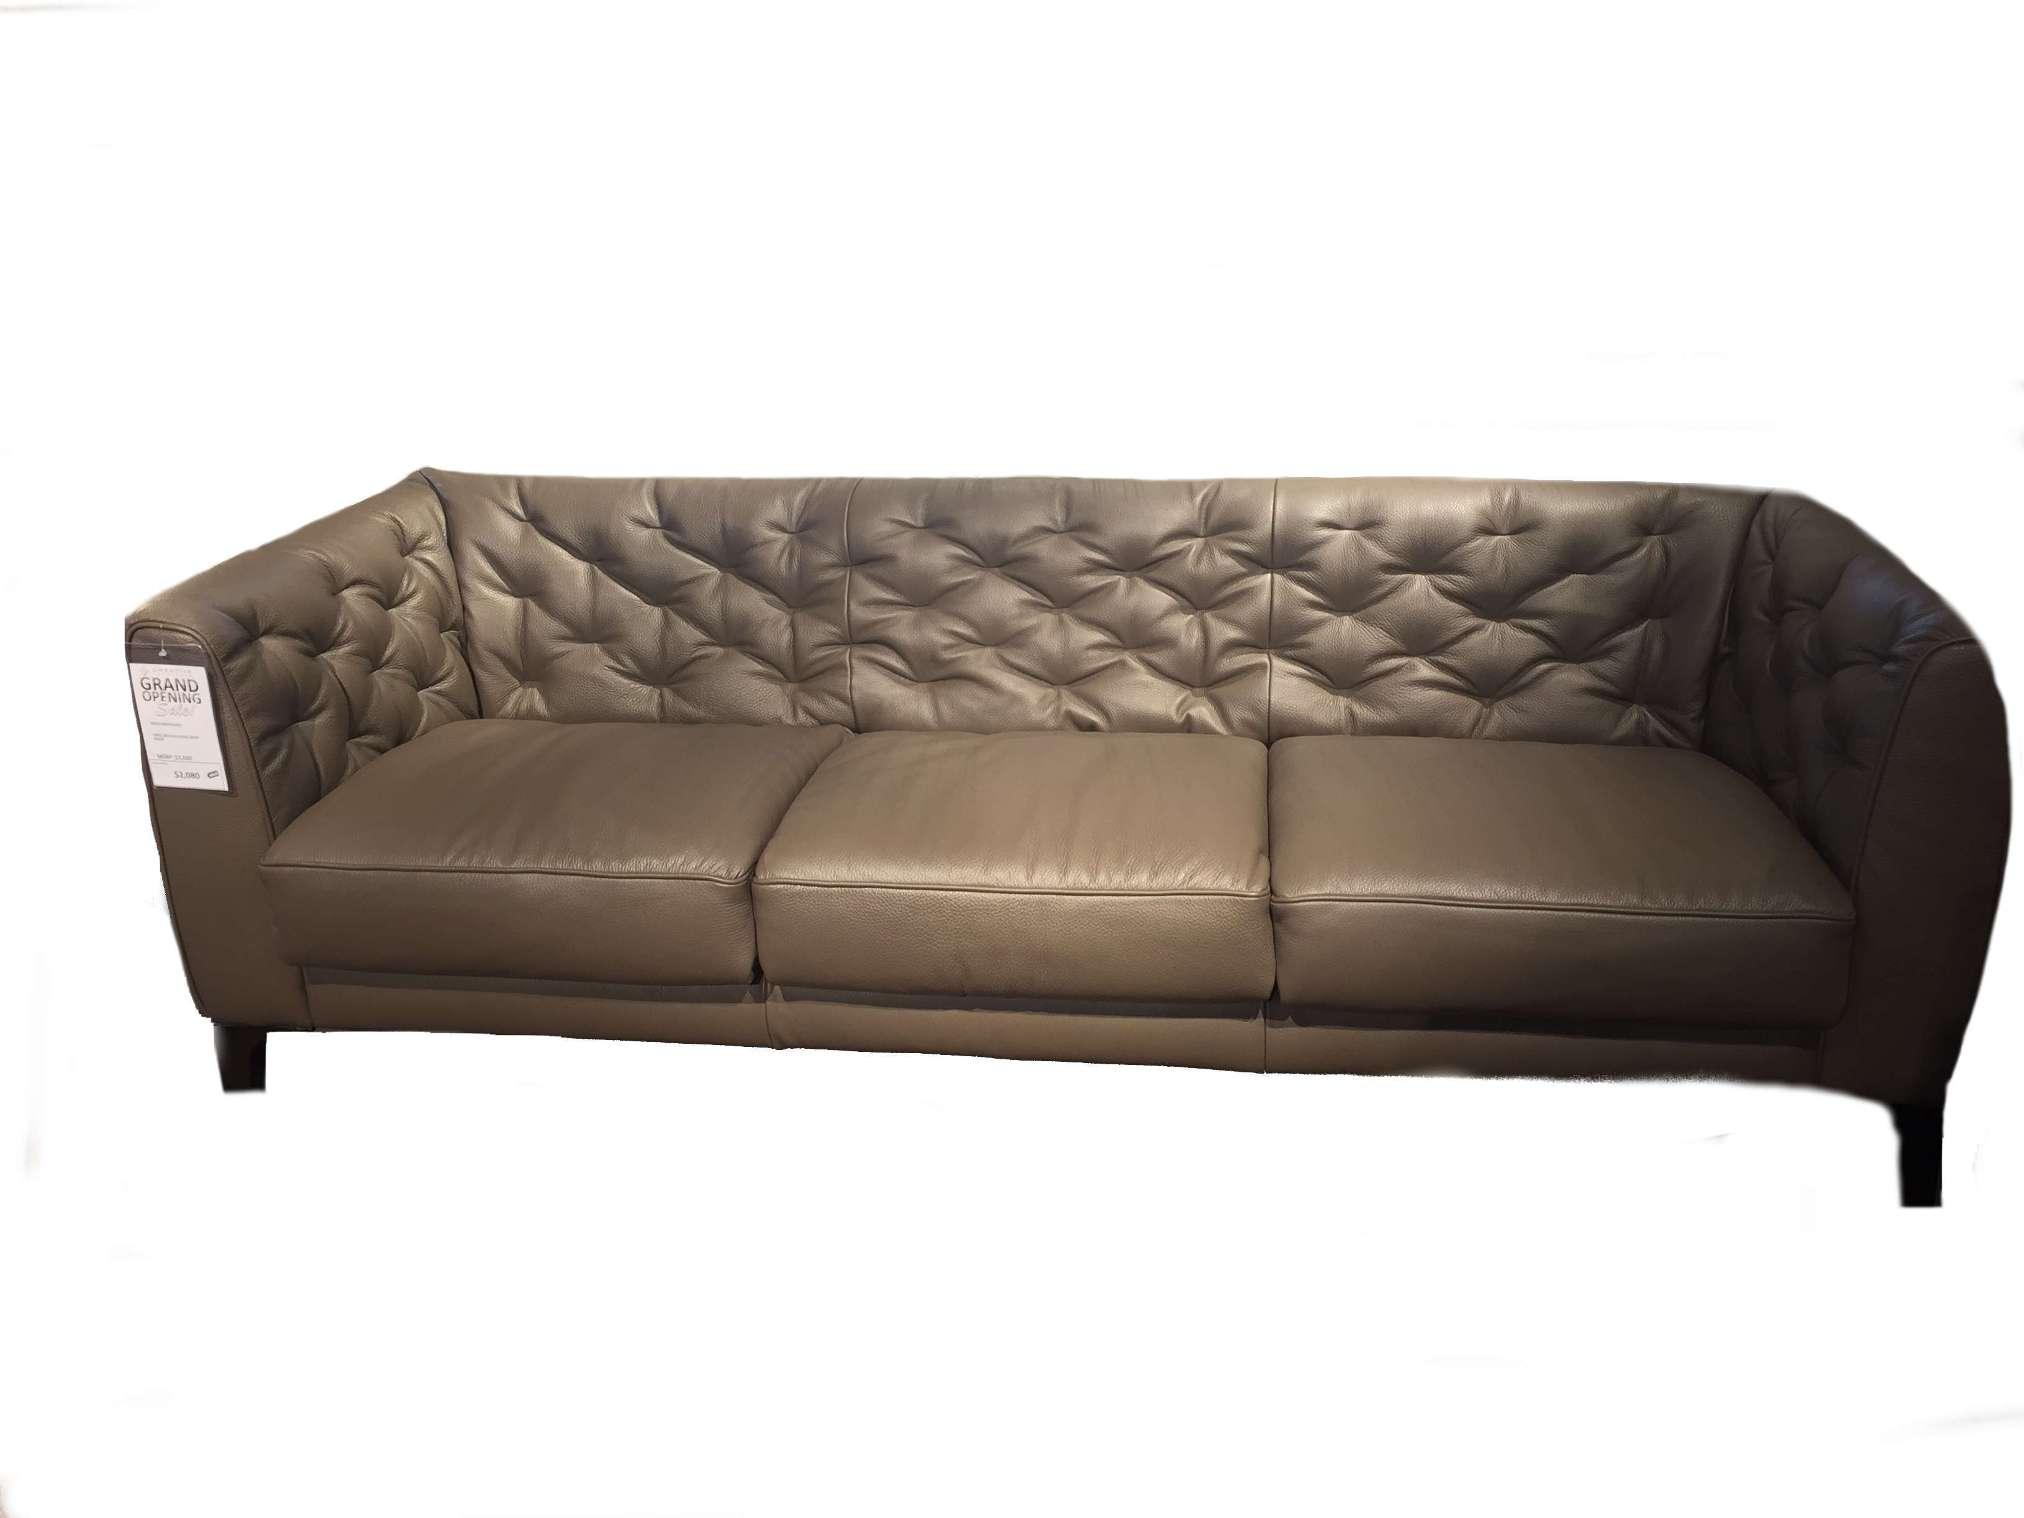 sofa bed canada sears black corner leather wholehome md fraser iii collection